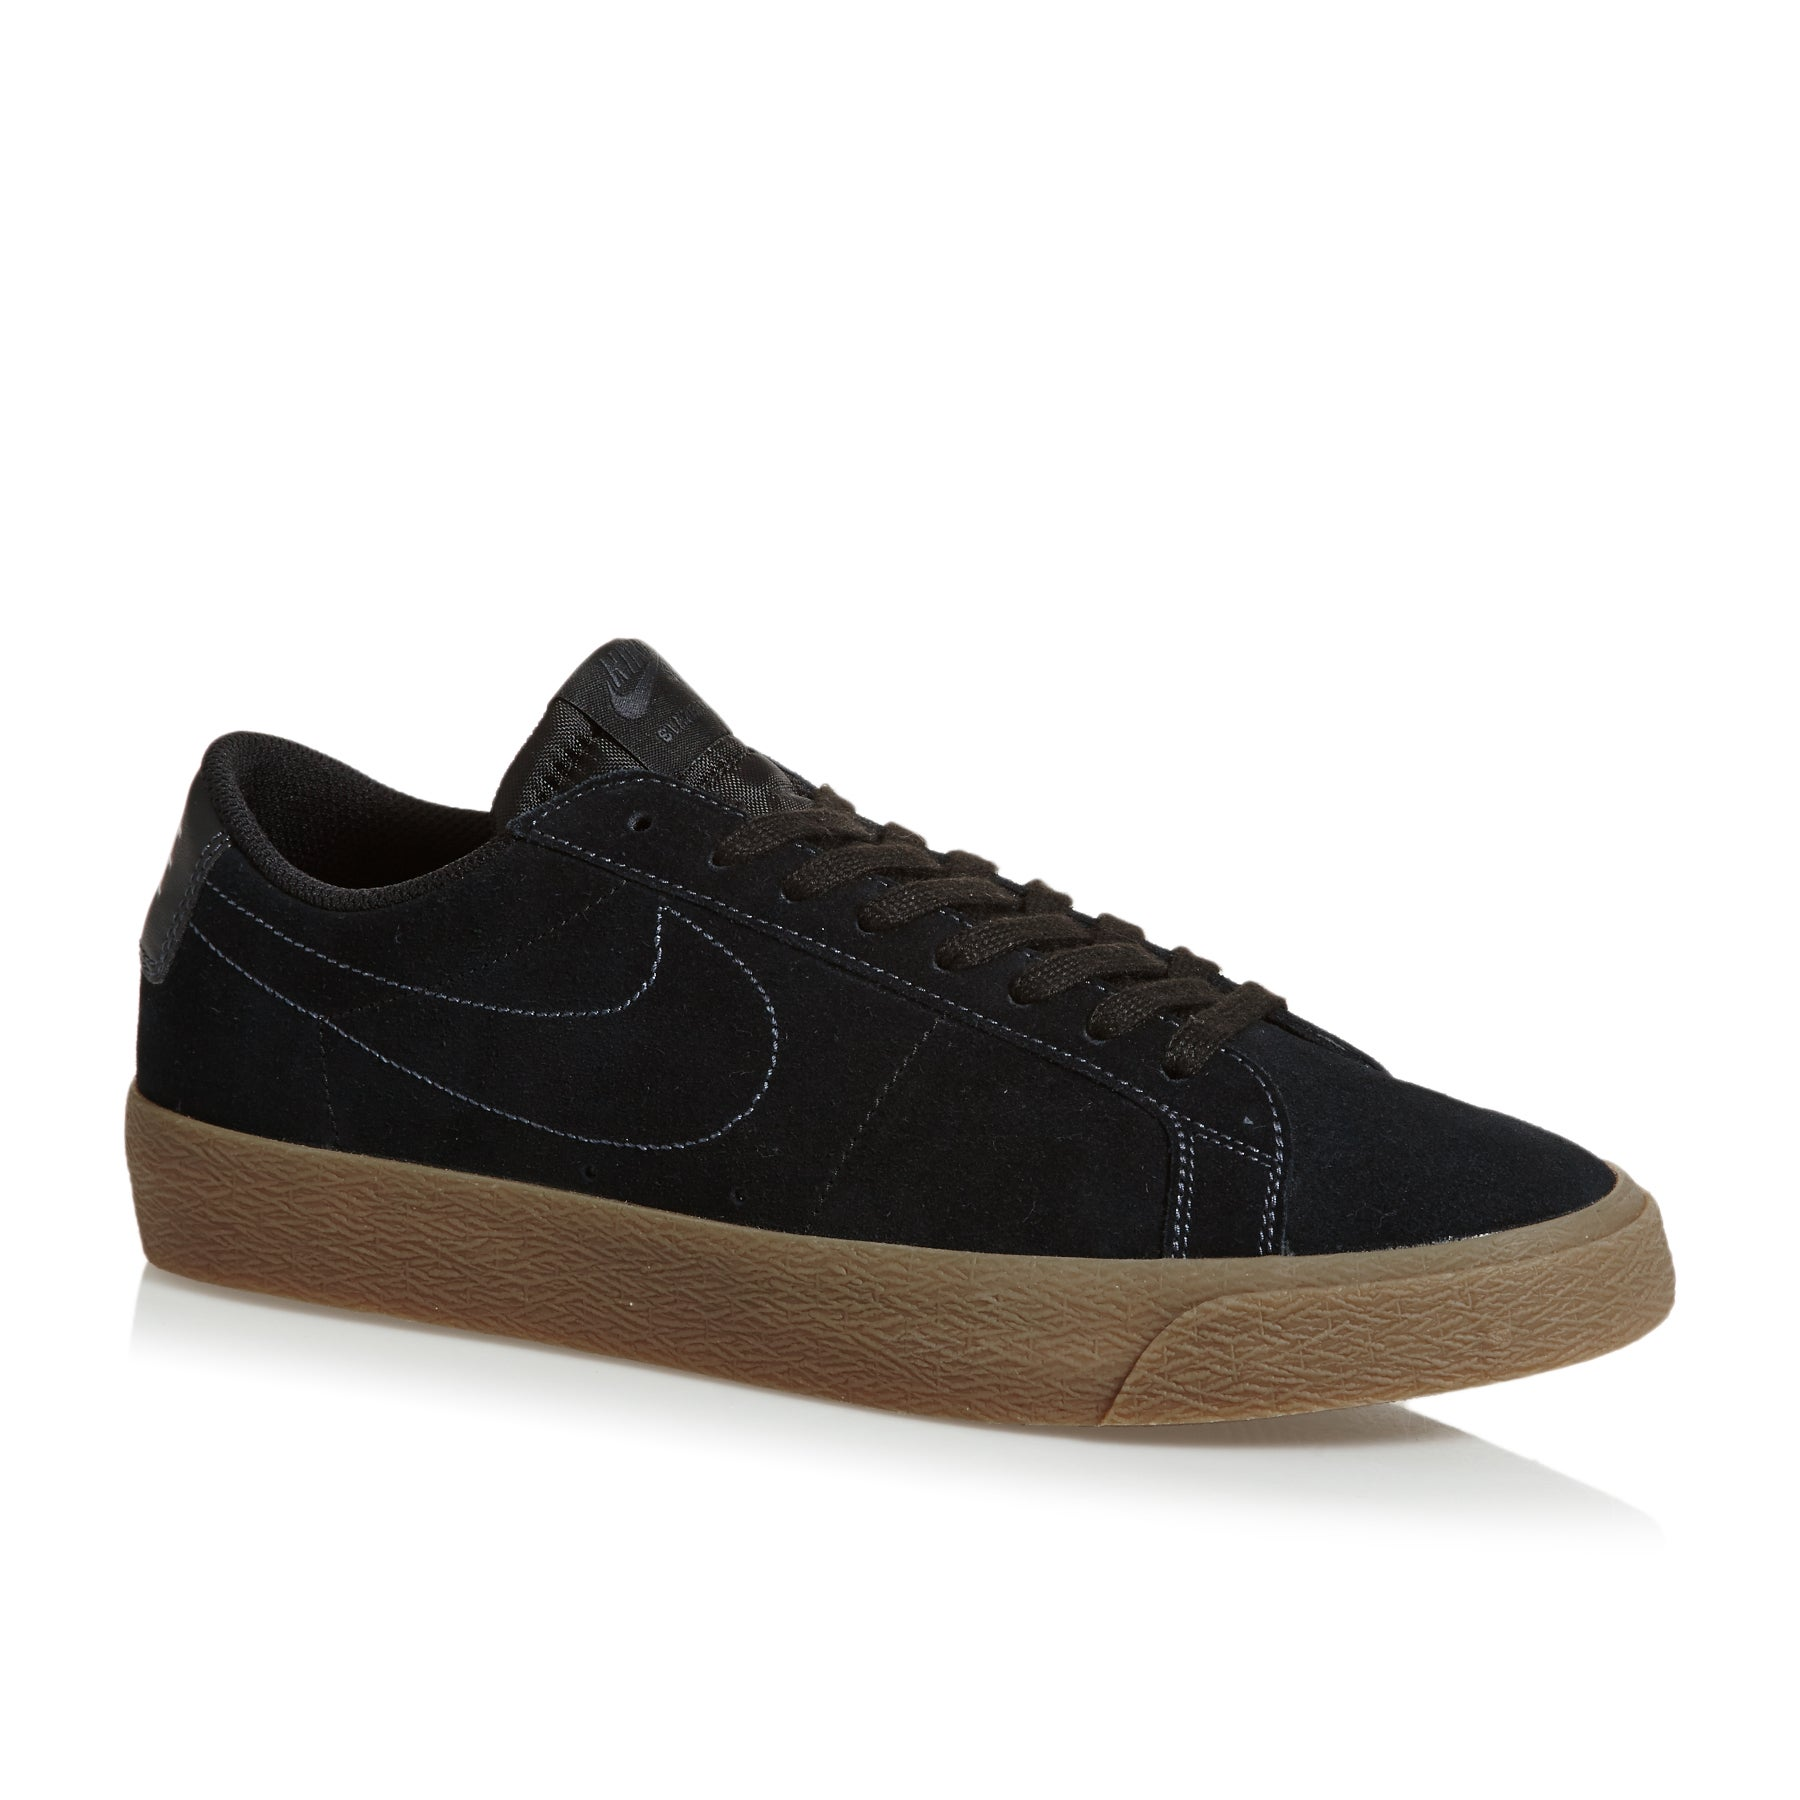 Nike SB Blazer Zoom Low Shoes - Black Black Anthracite